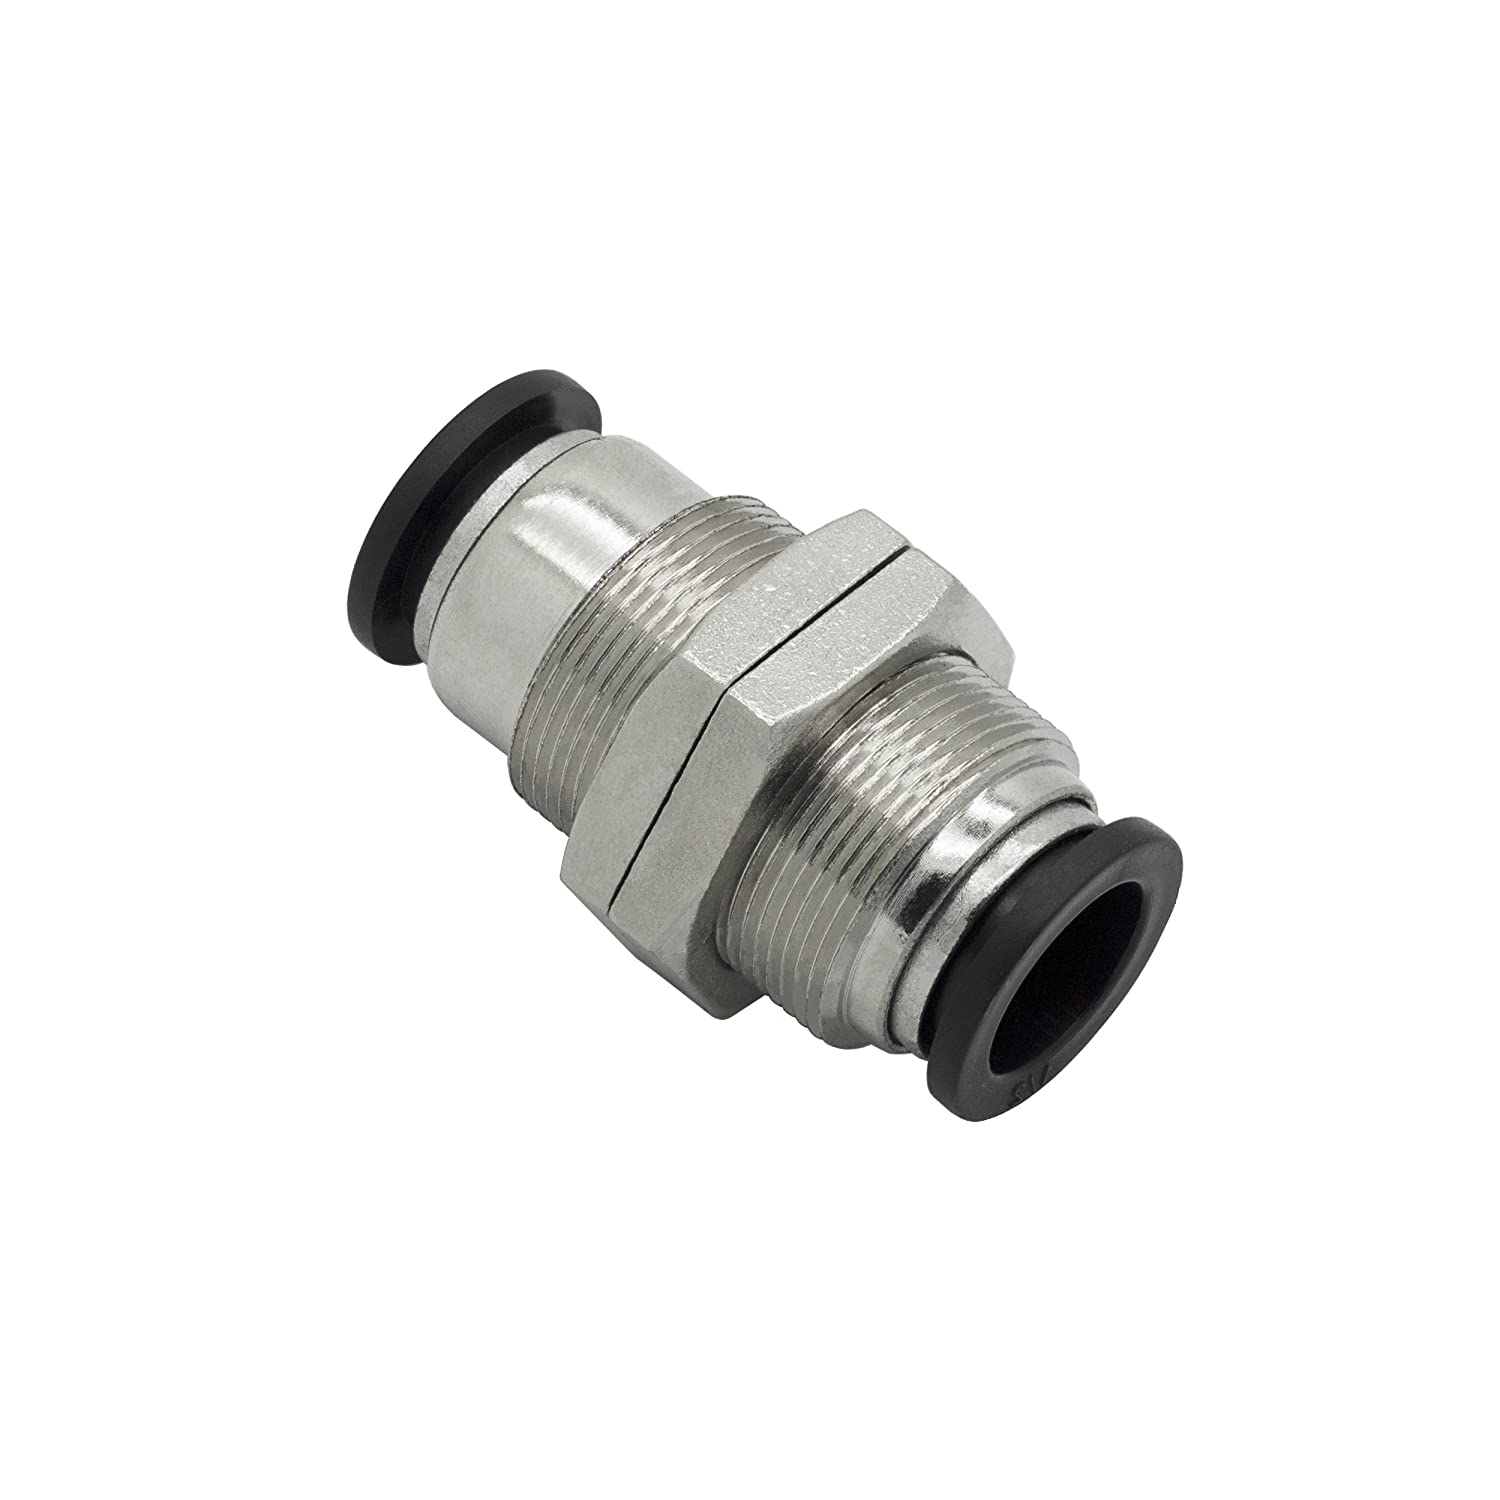 MacCan Pneumatic PMM1//2 Bulkhead Union 1//2 x 1//2 Tube OD Air Push to Connect Fittings Pack of 10